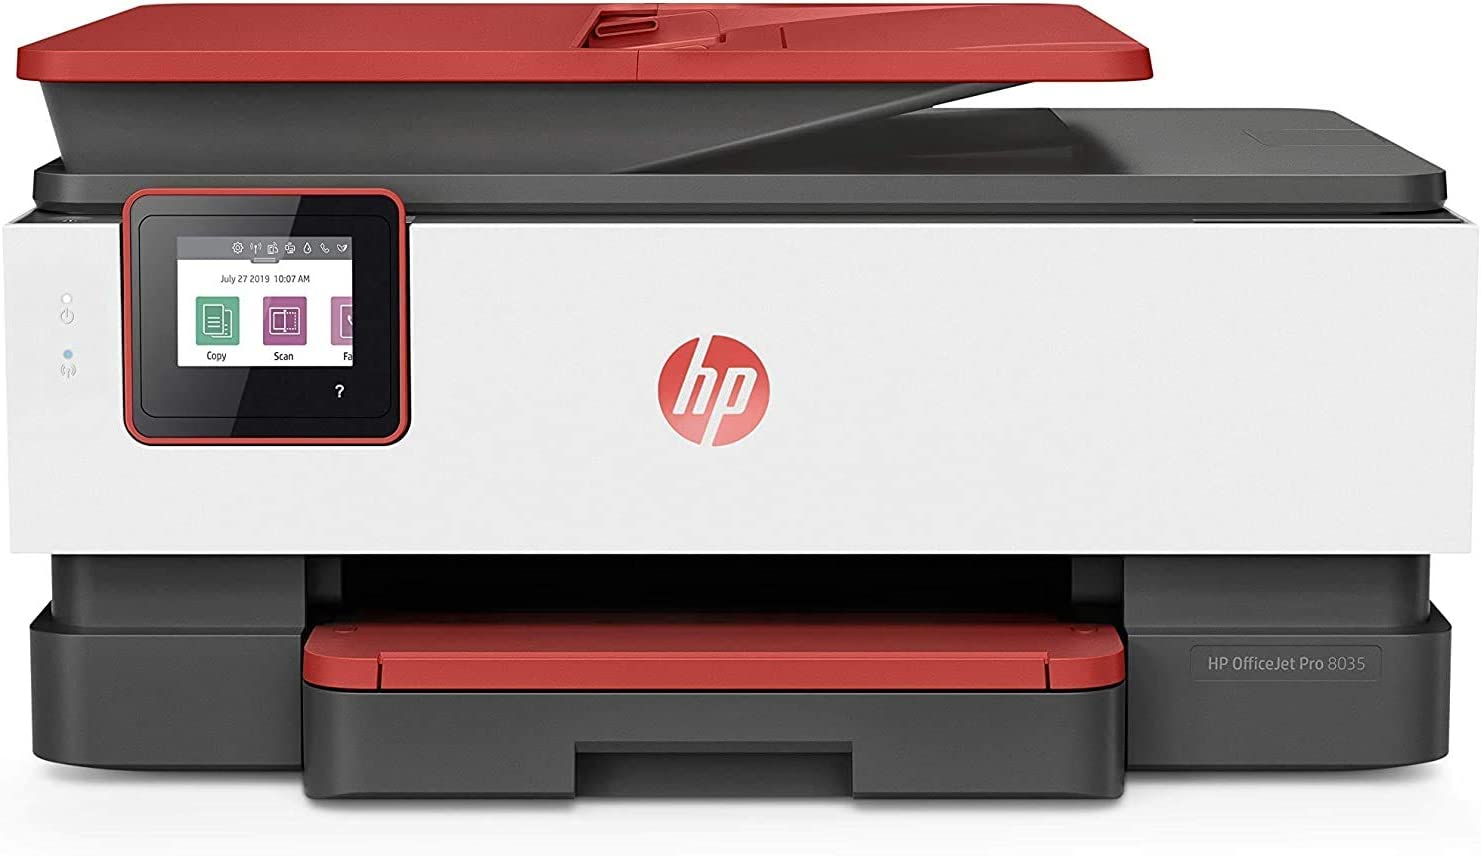 HP OfficeJet Pro 8035 All-in-One Wireless Printer | Includes 8 Months of Ink Delivered to Your Door, Smart Home Office Productivity, Coral (4KJ65A)